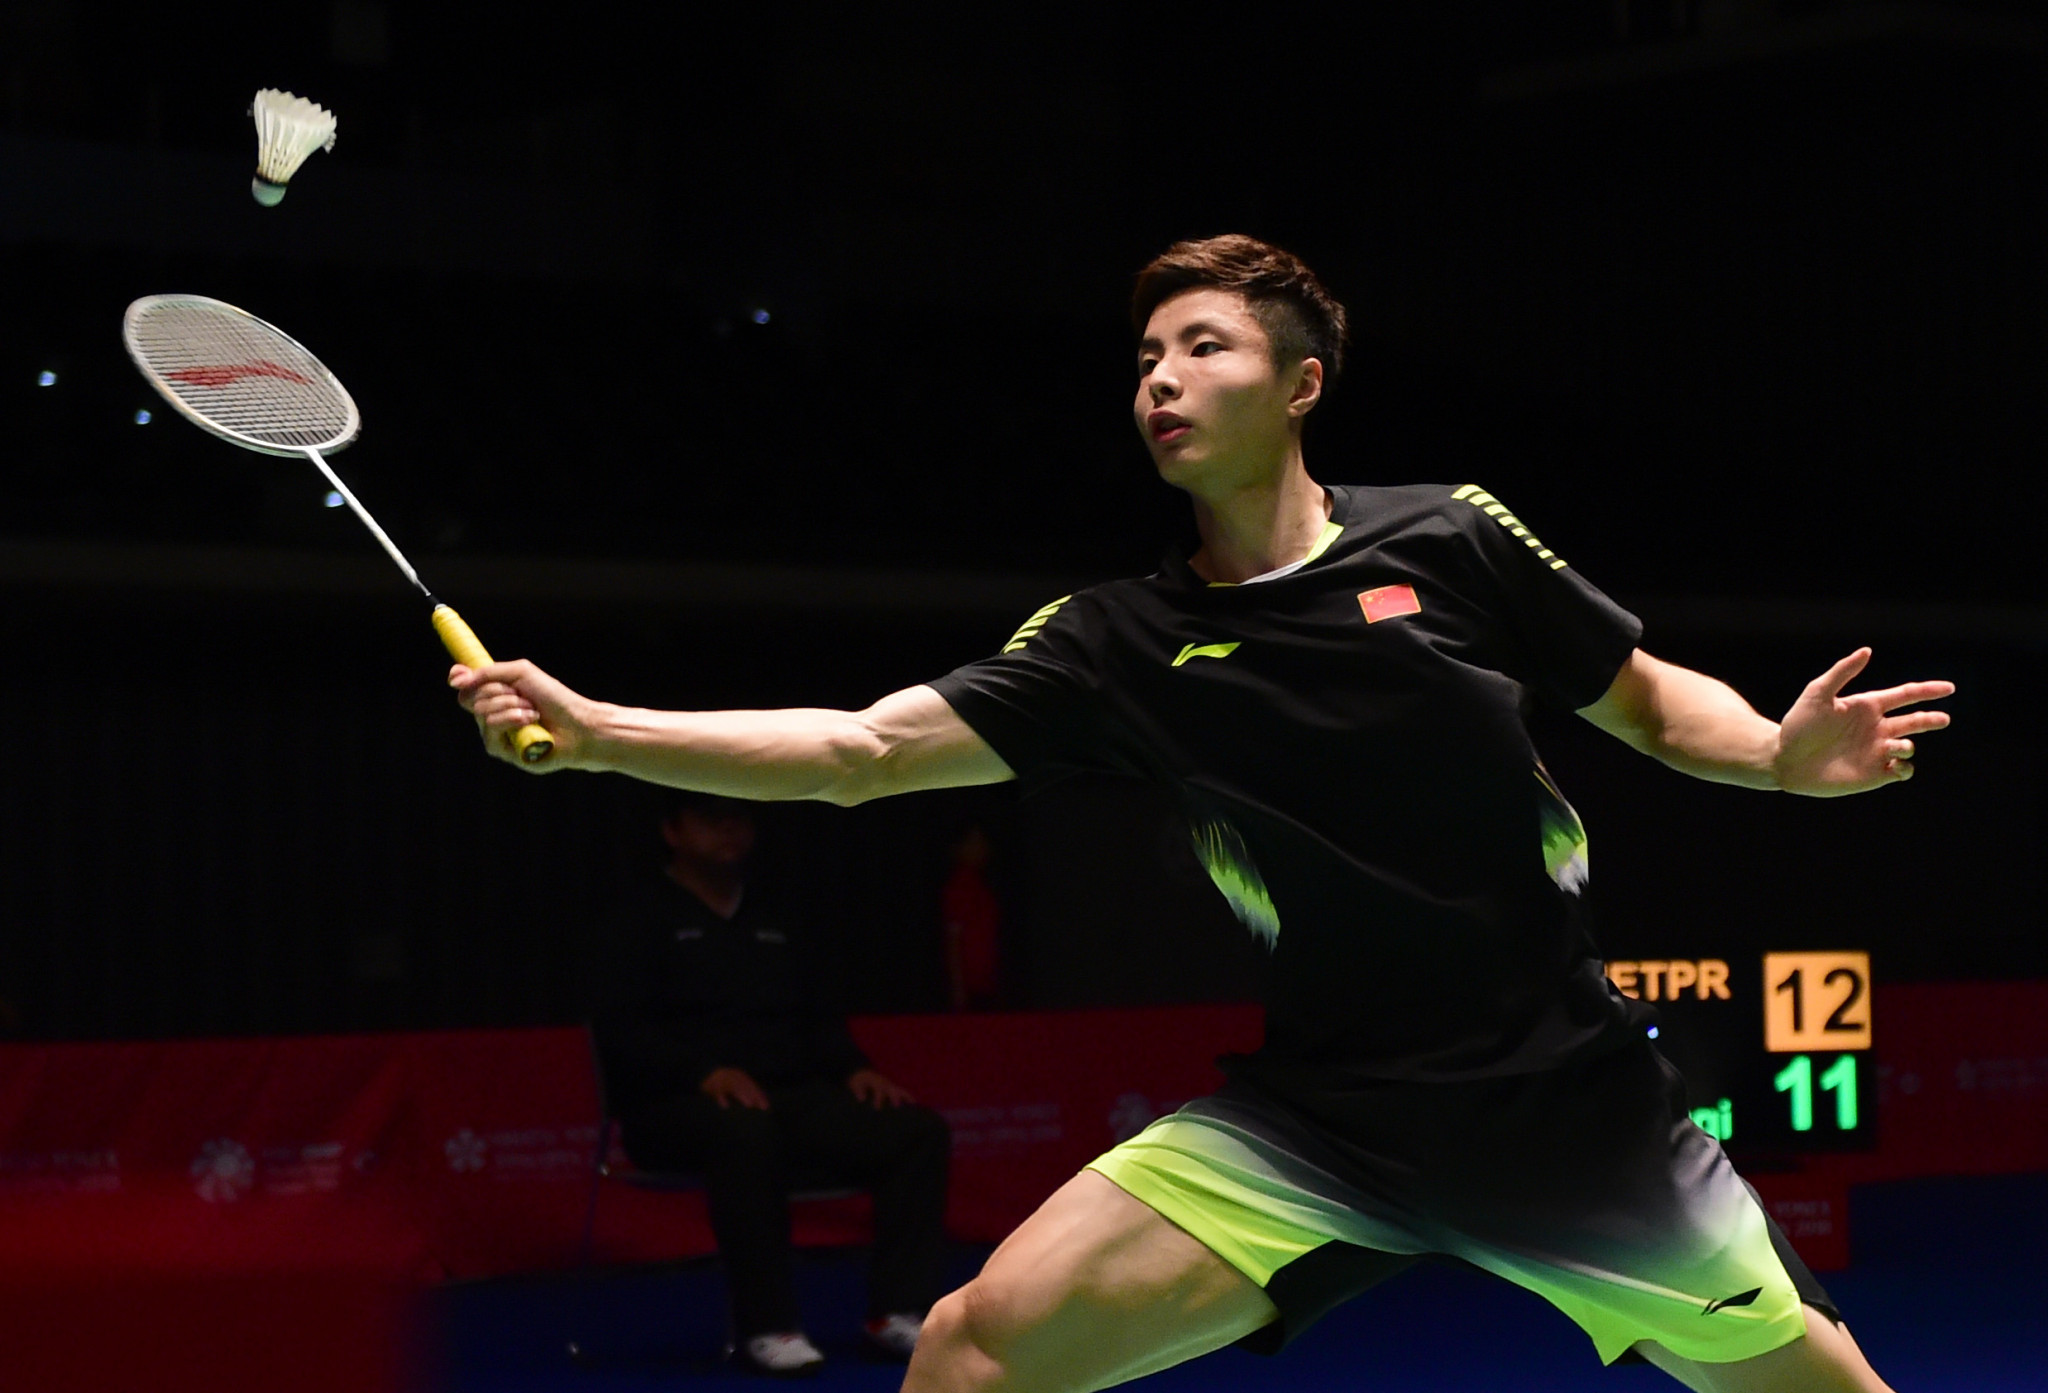 Shi Yuqi delighted the home crowd by securing his place in the semi-finals of the BWF China Open in Changzhou today ©Getty Images